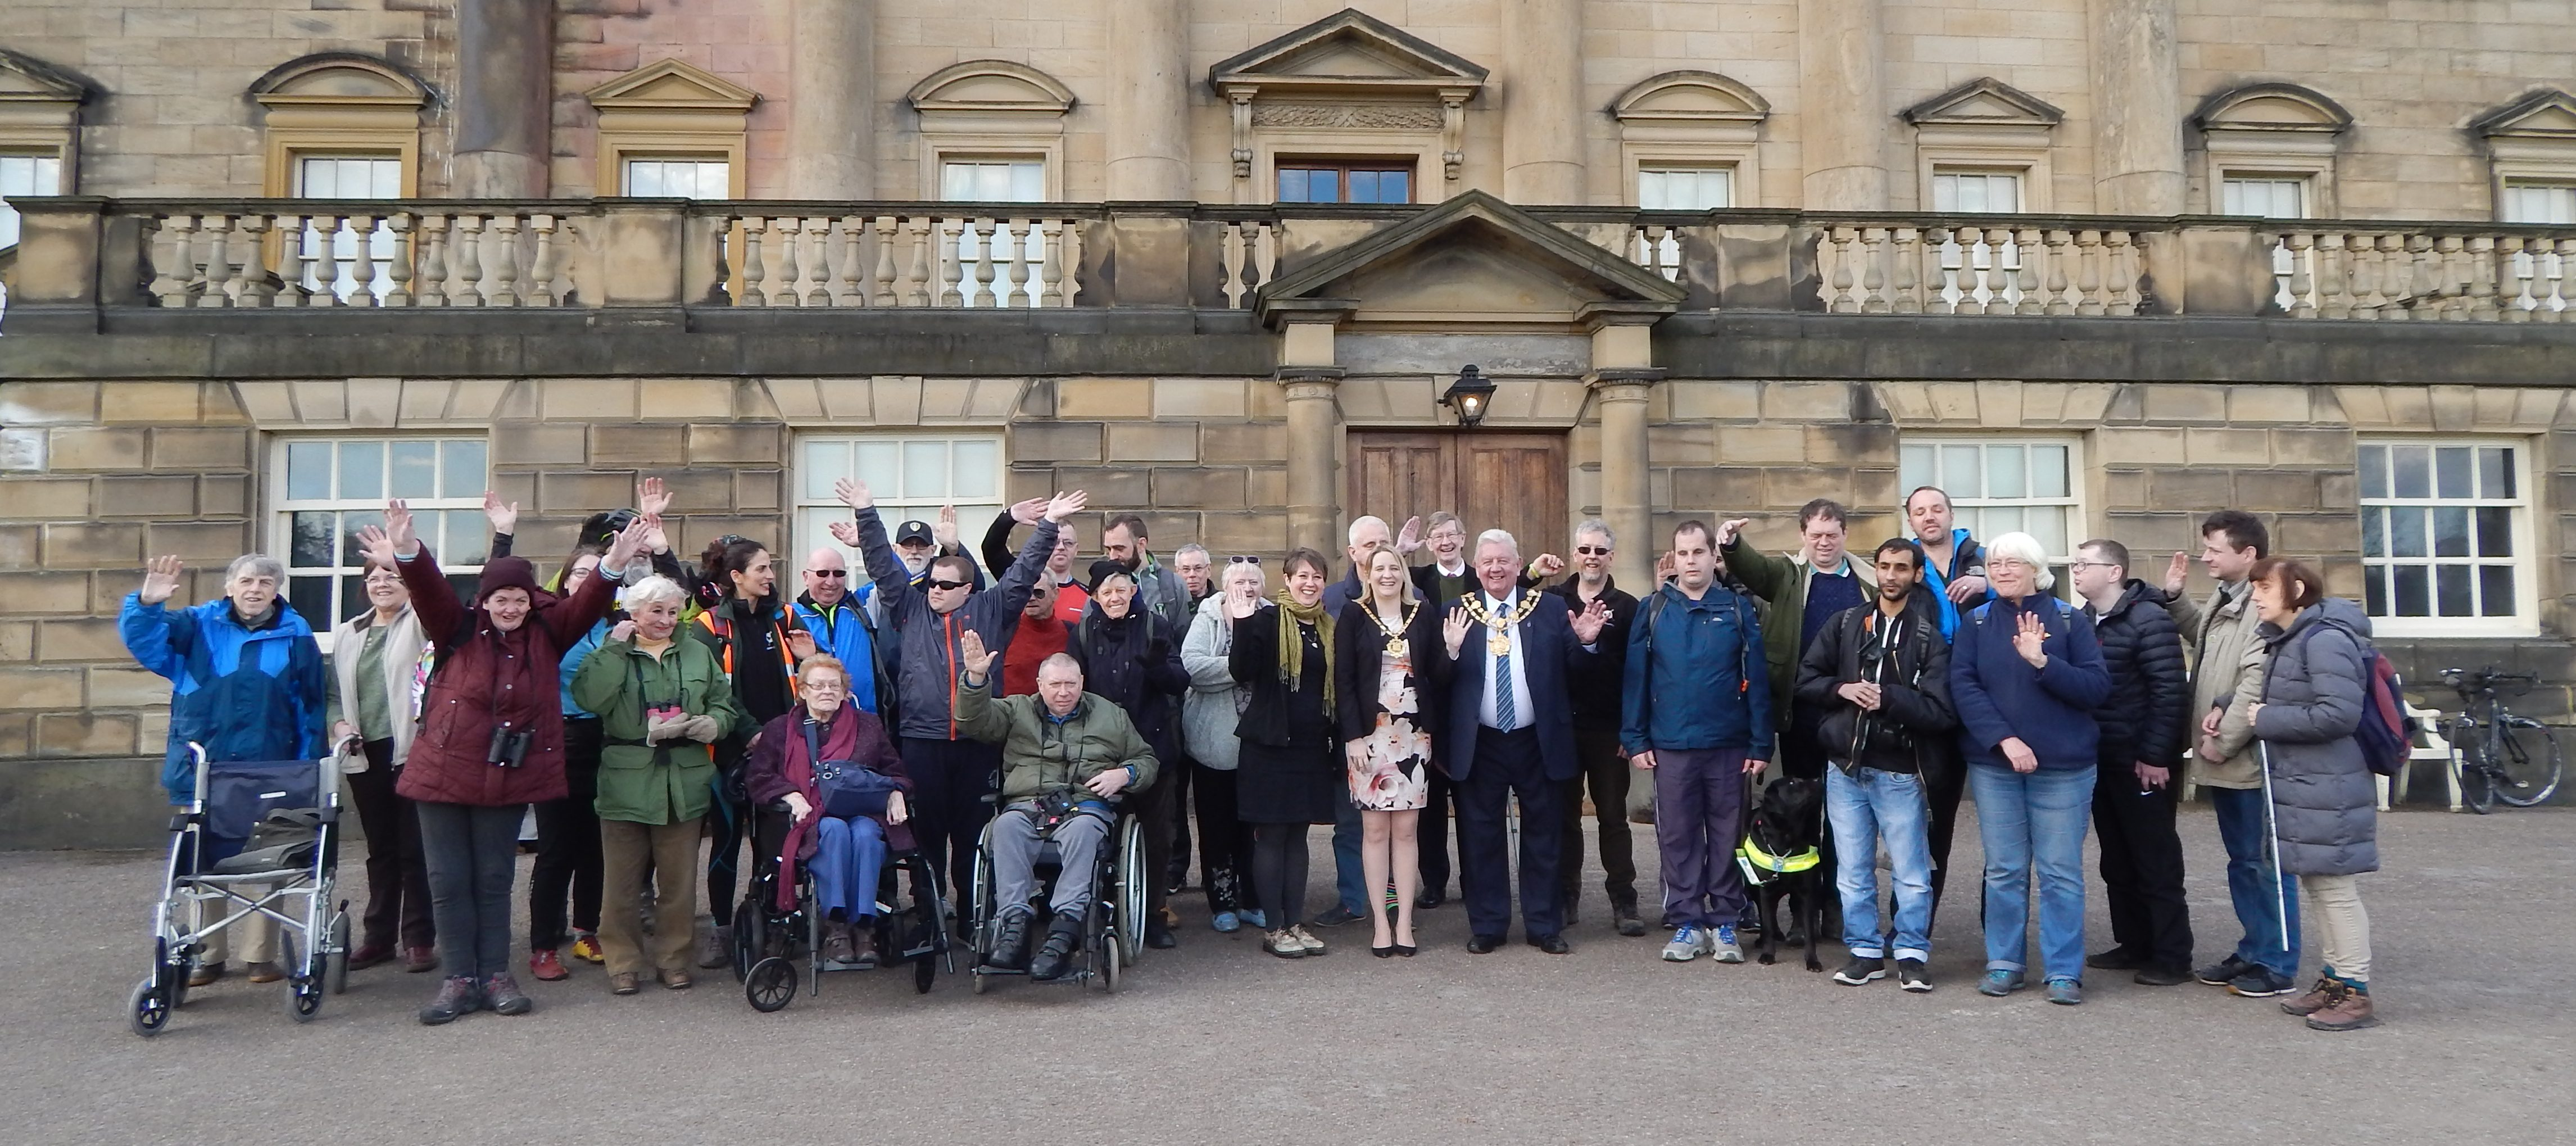 A large group of people outside the country house at Nostell during the launch of the Wakefield Project.